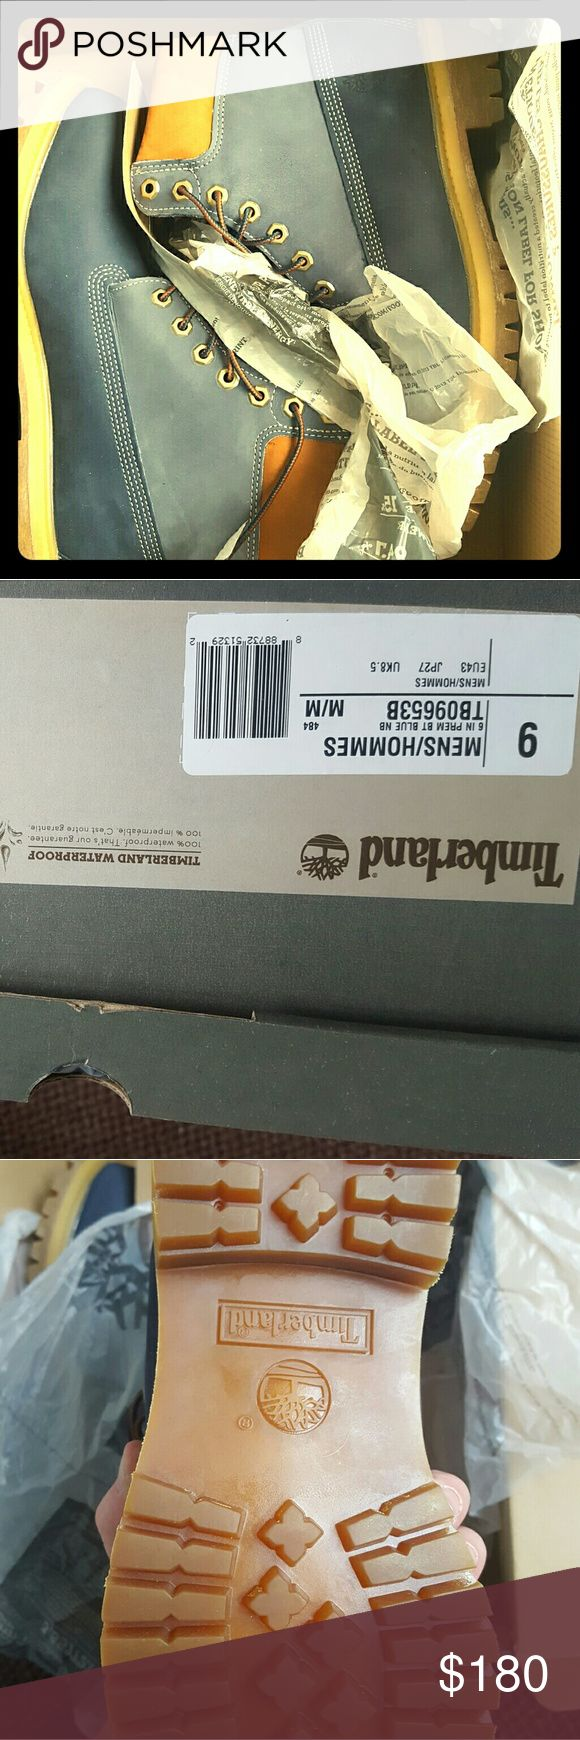 Timberland Boots Brand new two tone blue timberland boots never worn. Timberland Shoes Winter & Rain Boots